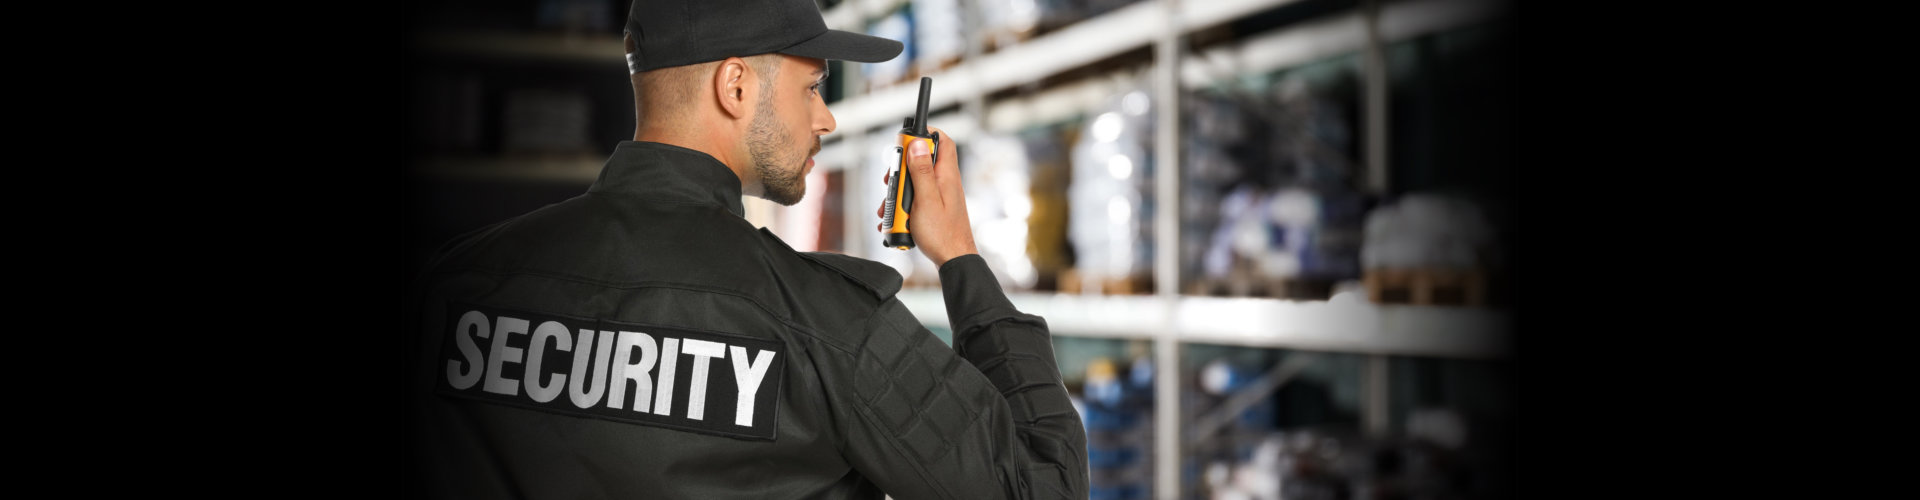 Security guard using portable radio transmitter in wholesale warehouse